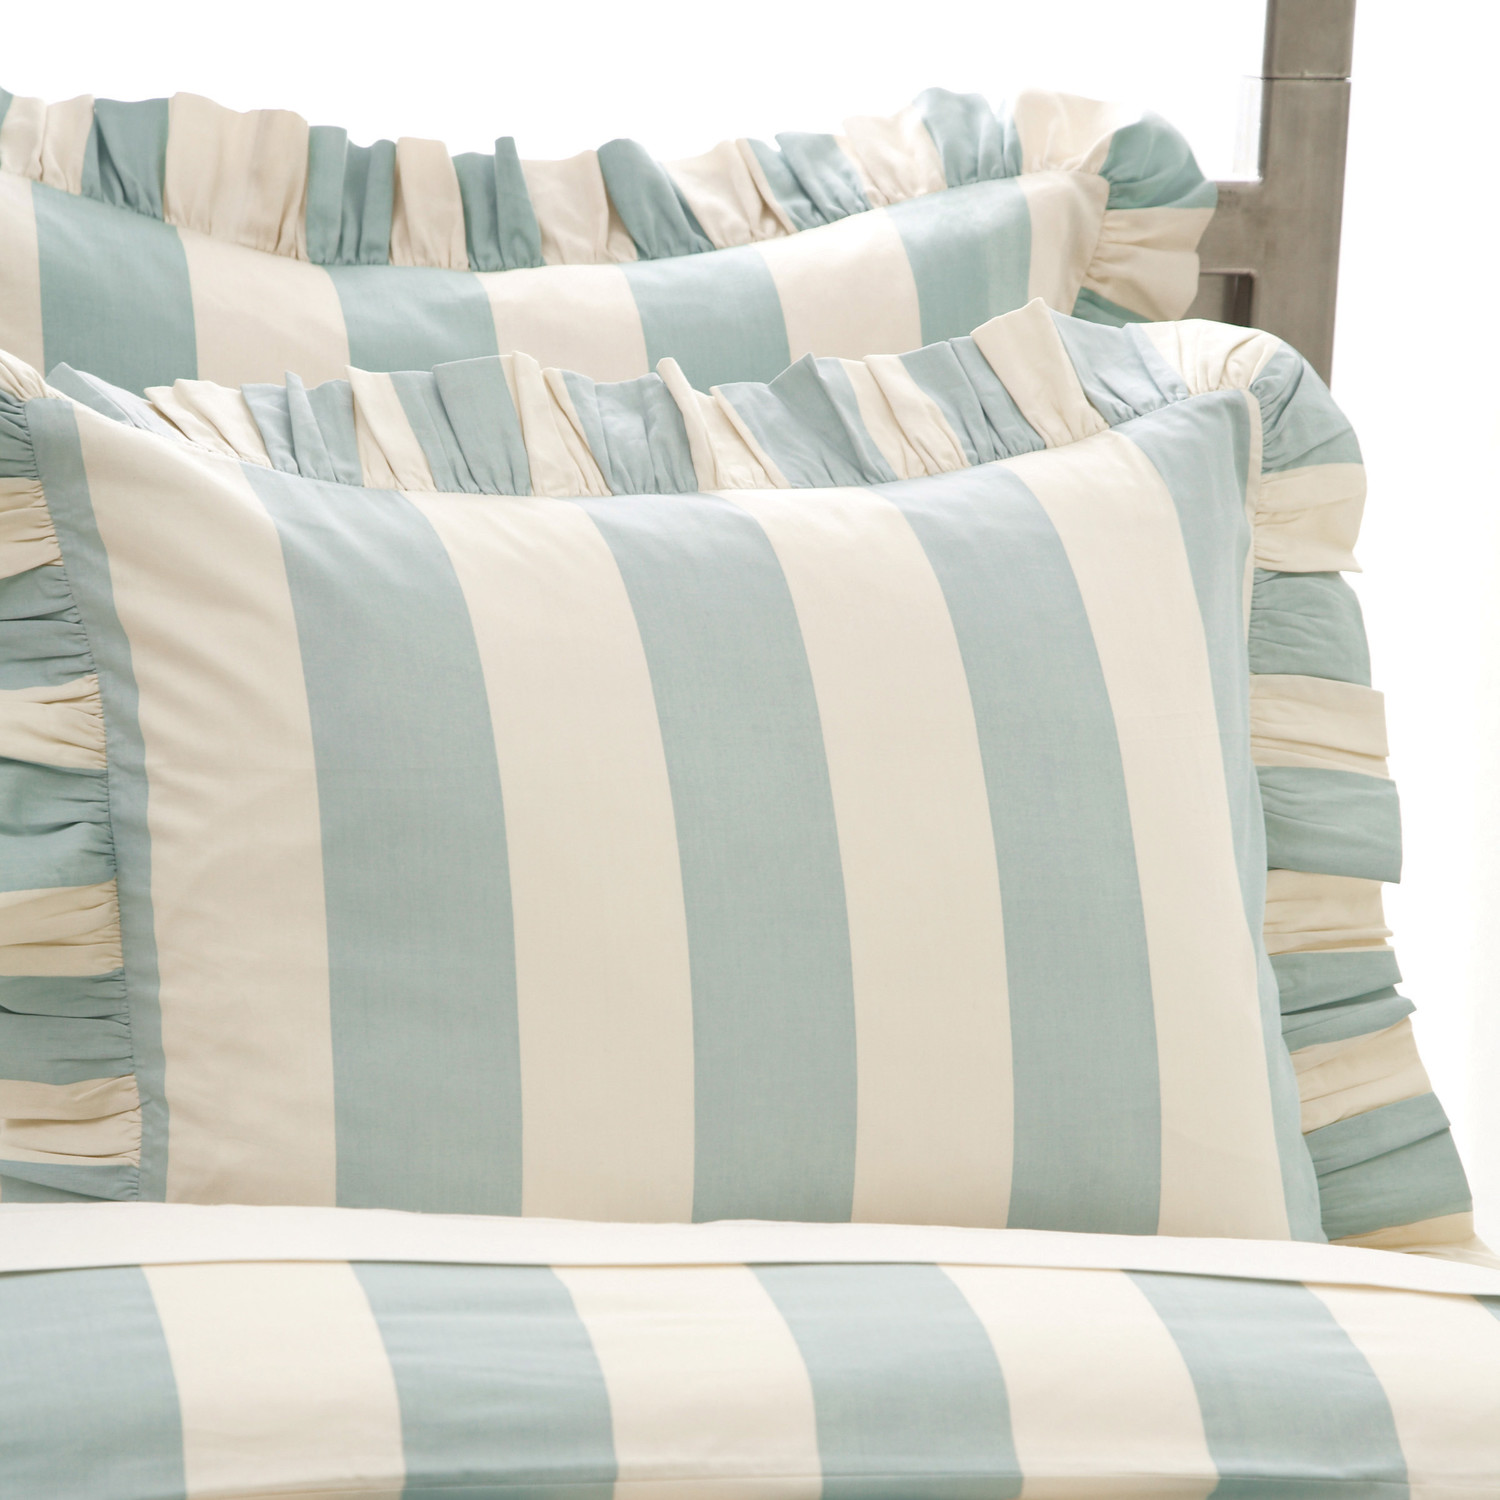 Lovely Pine Cone Hill Bedding For Interesting Bed Ideas: Lovely Pine Cone Hill Madeline Stripe Sham In White And Blue For Bedding Ideas